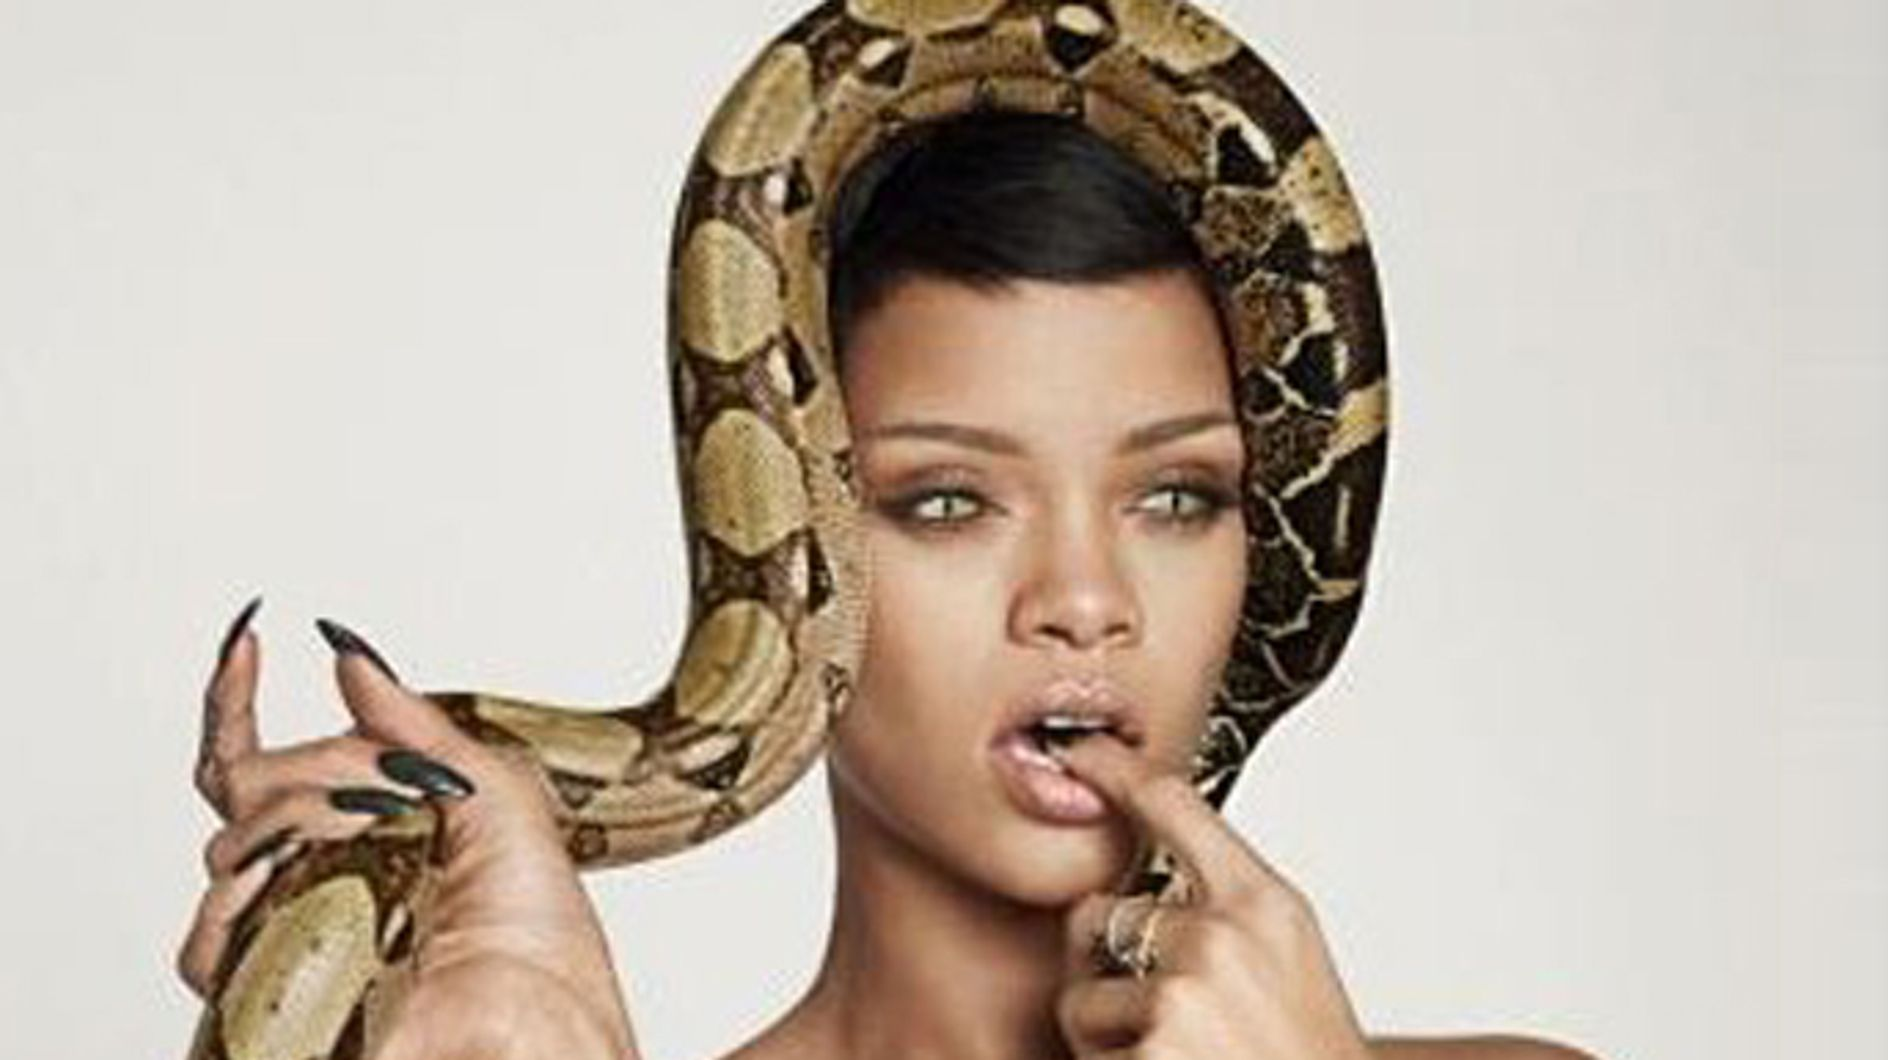 Rihanna Poses Naked With Snakes for British GQ